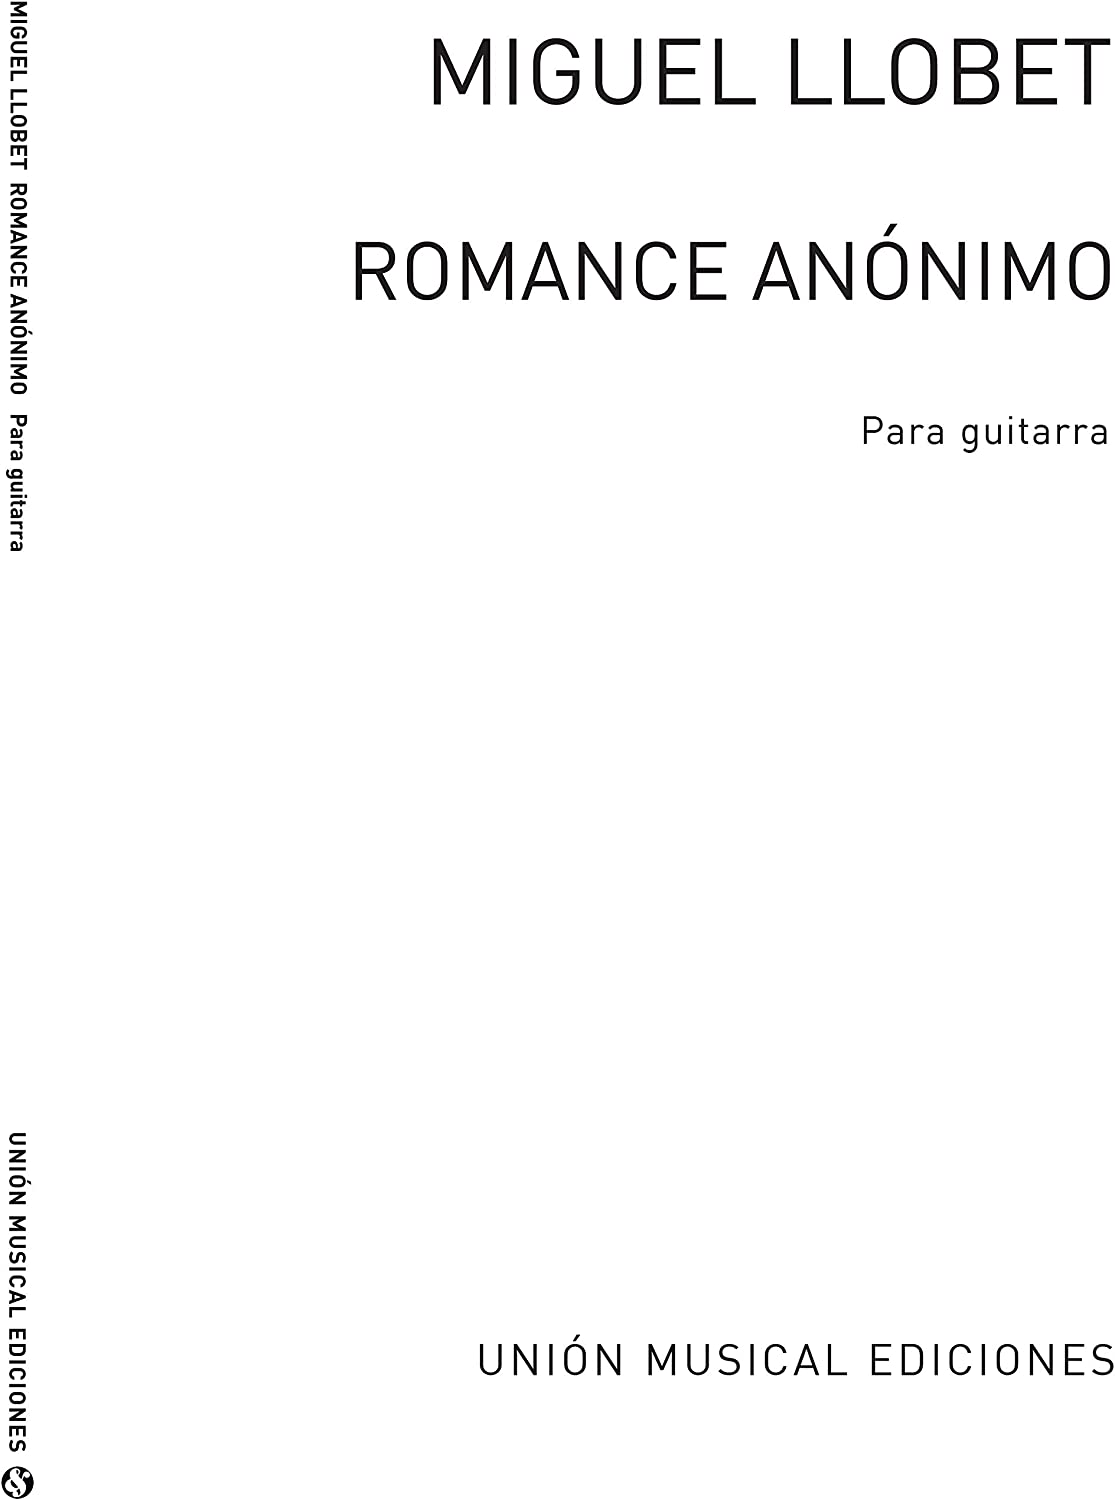 Romance Anonimo - Guitar - Book: Miguel Llobet: Amazon.es ...